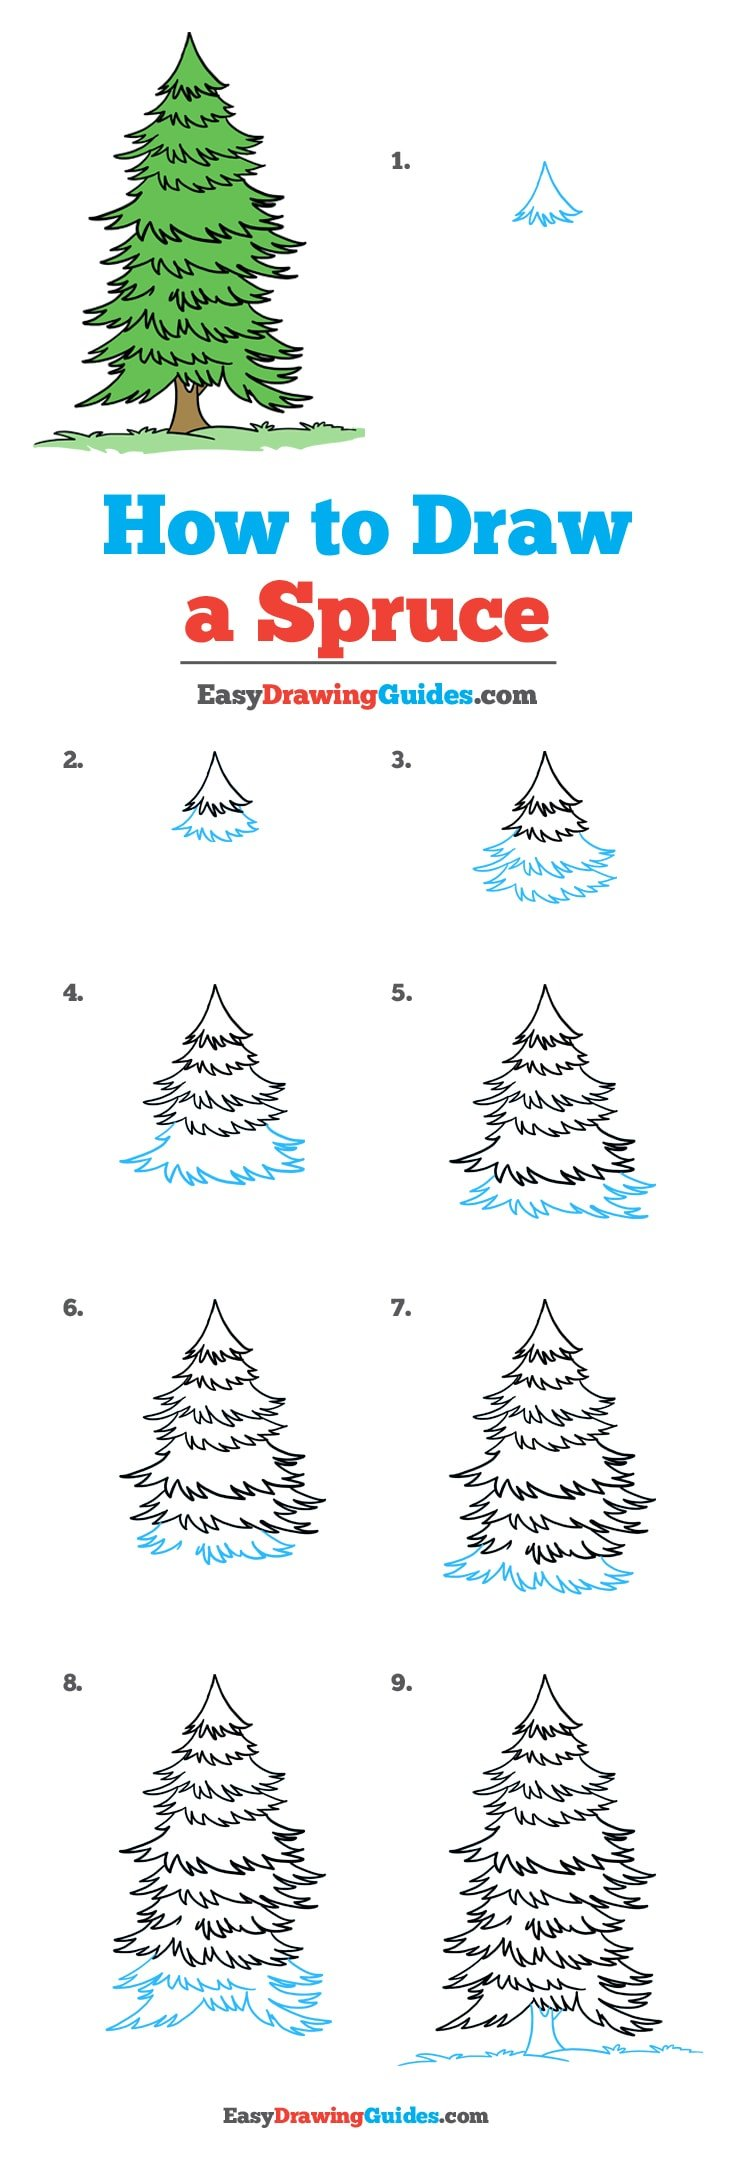 How to Draw Spruce